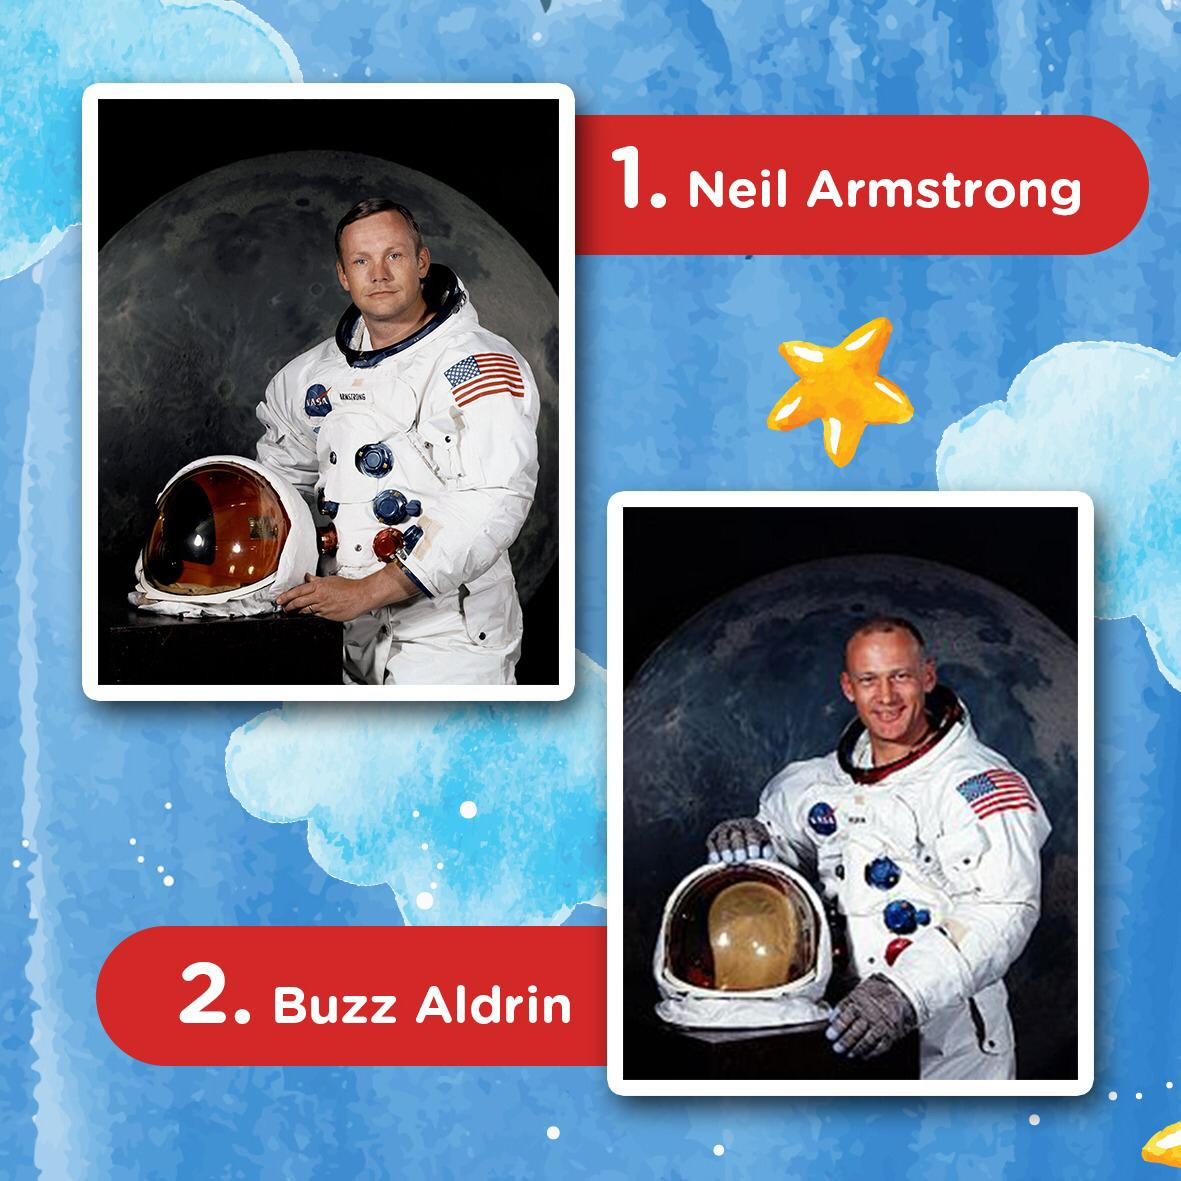 neil armstrong facts 16 interesting facts about neil - HD1181×1181